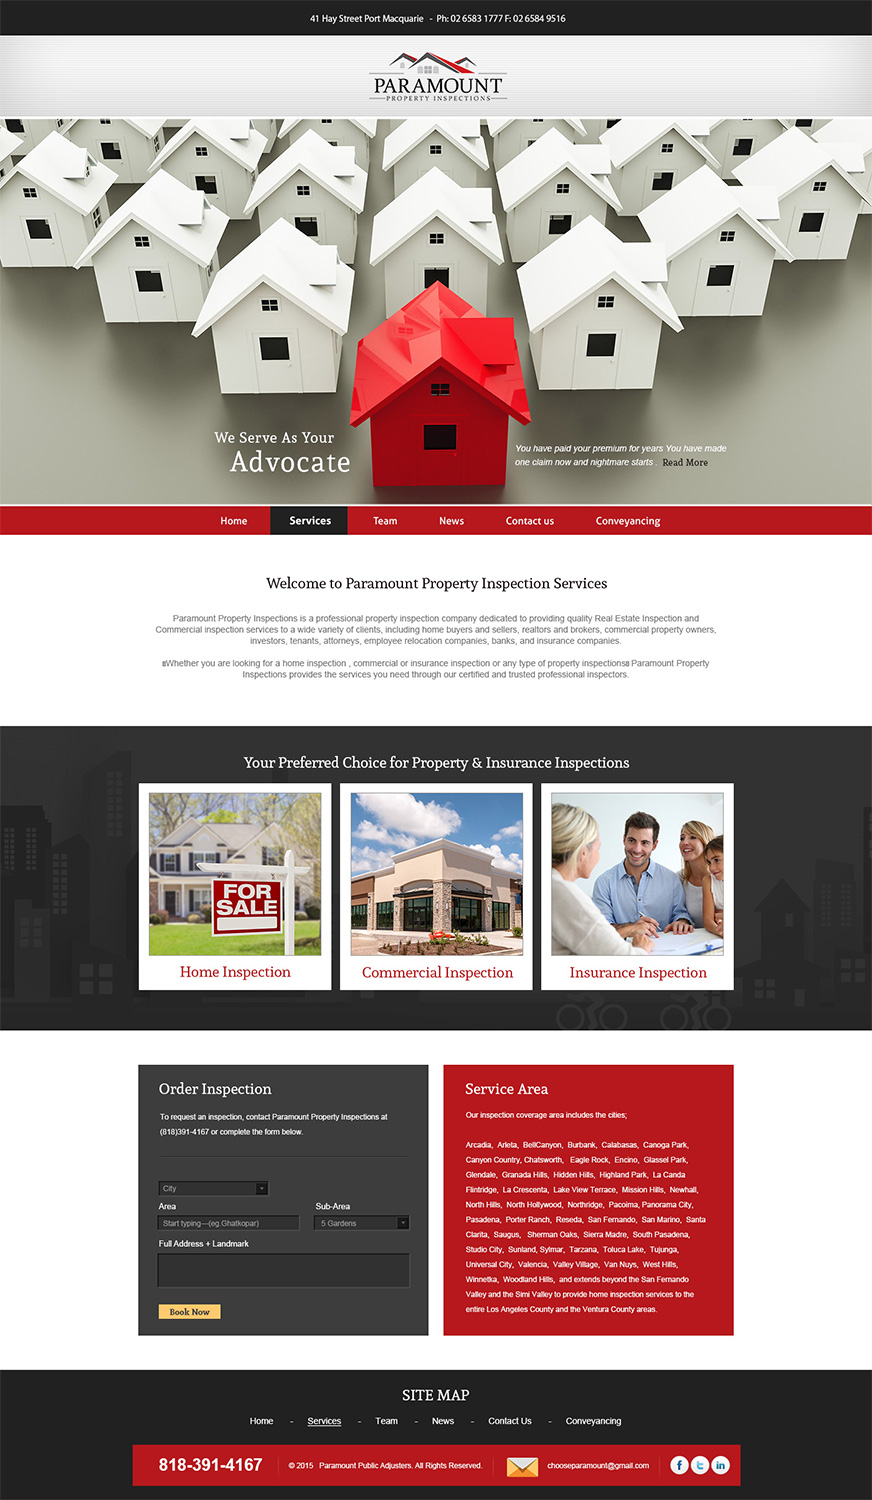 Web Design By Esolbiz For Home Inspection Company Performing Buyers And Sellers